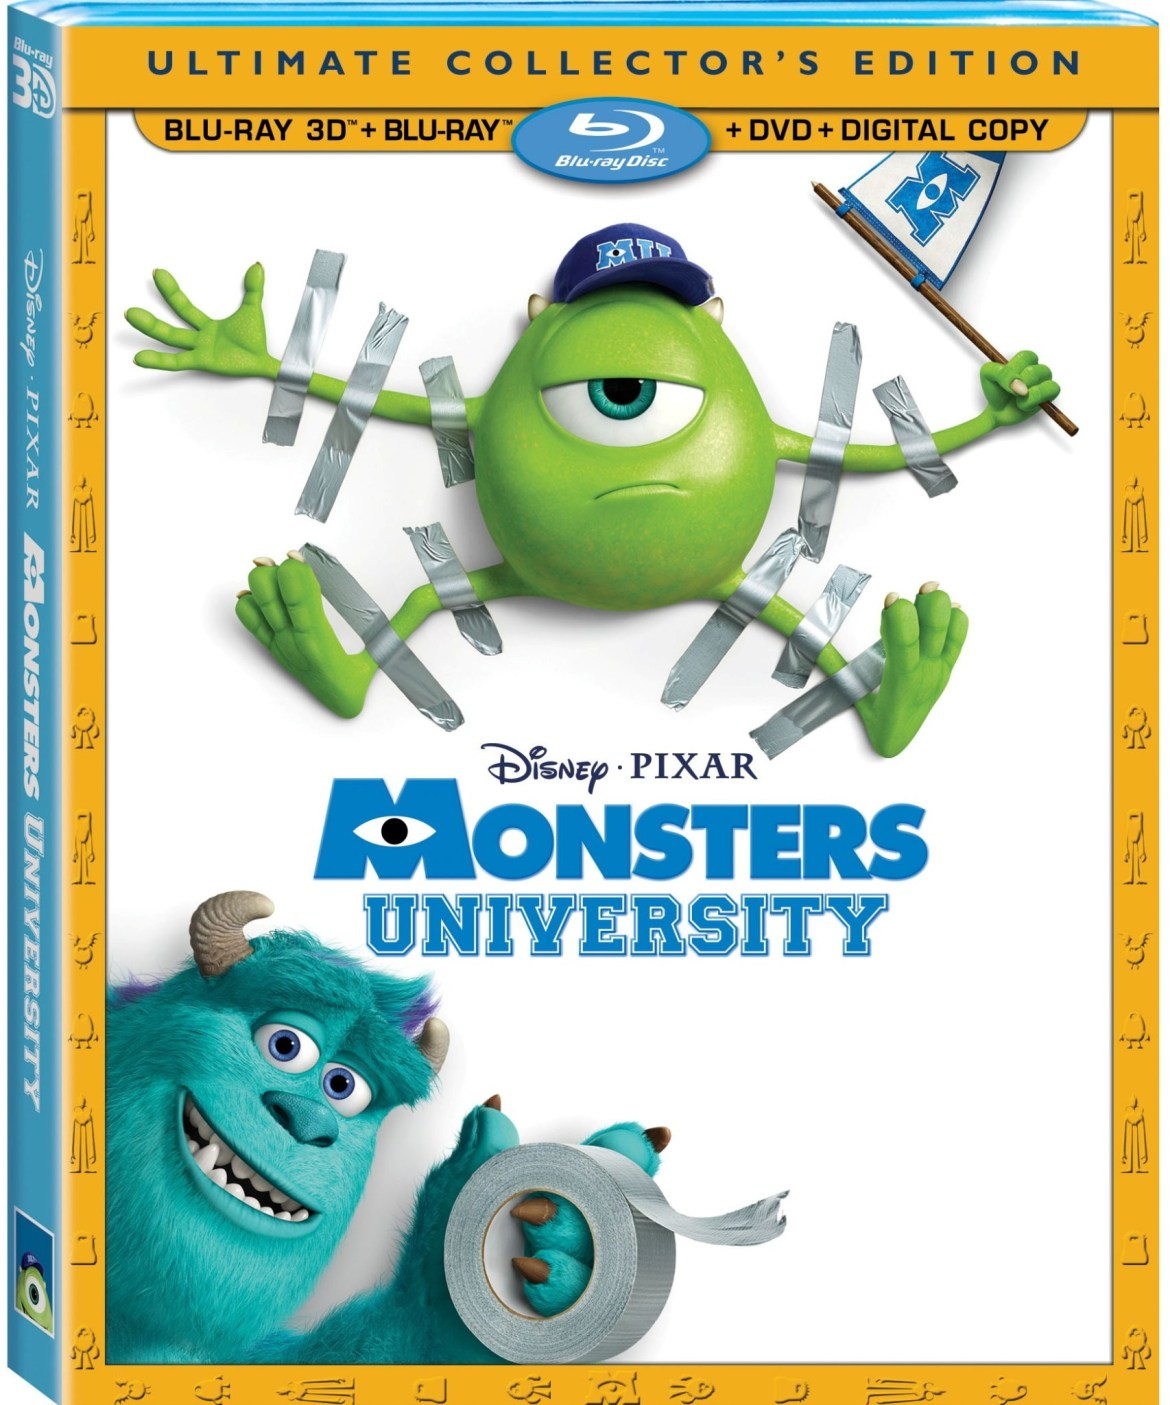 Monsters University Coming to Blu-ray and DVD on October 8, 2013